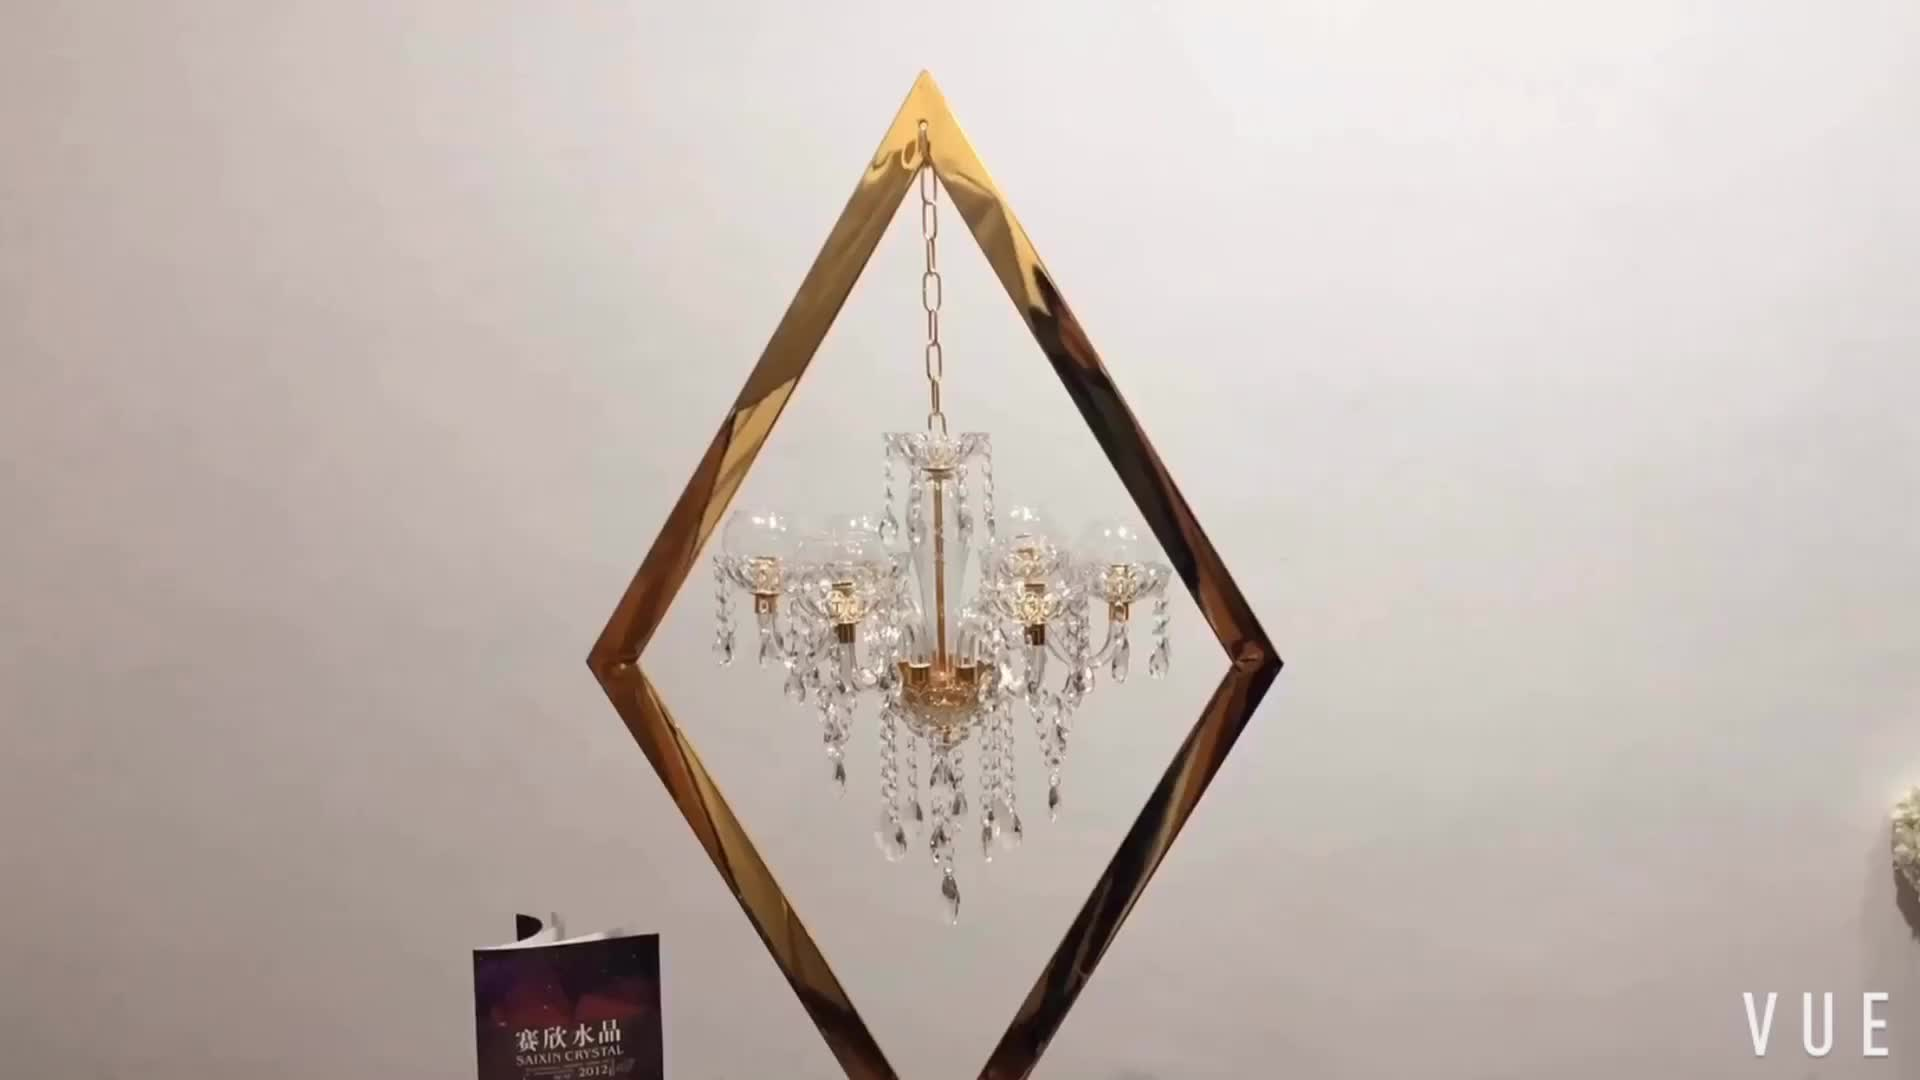 Luxury gold diamond stand with chandeliers  centerpieces for wedding table decoration